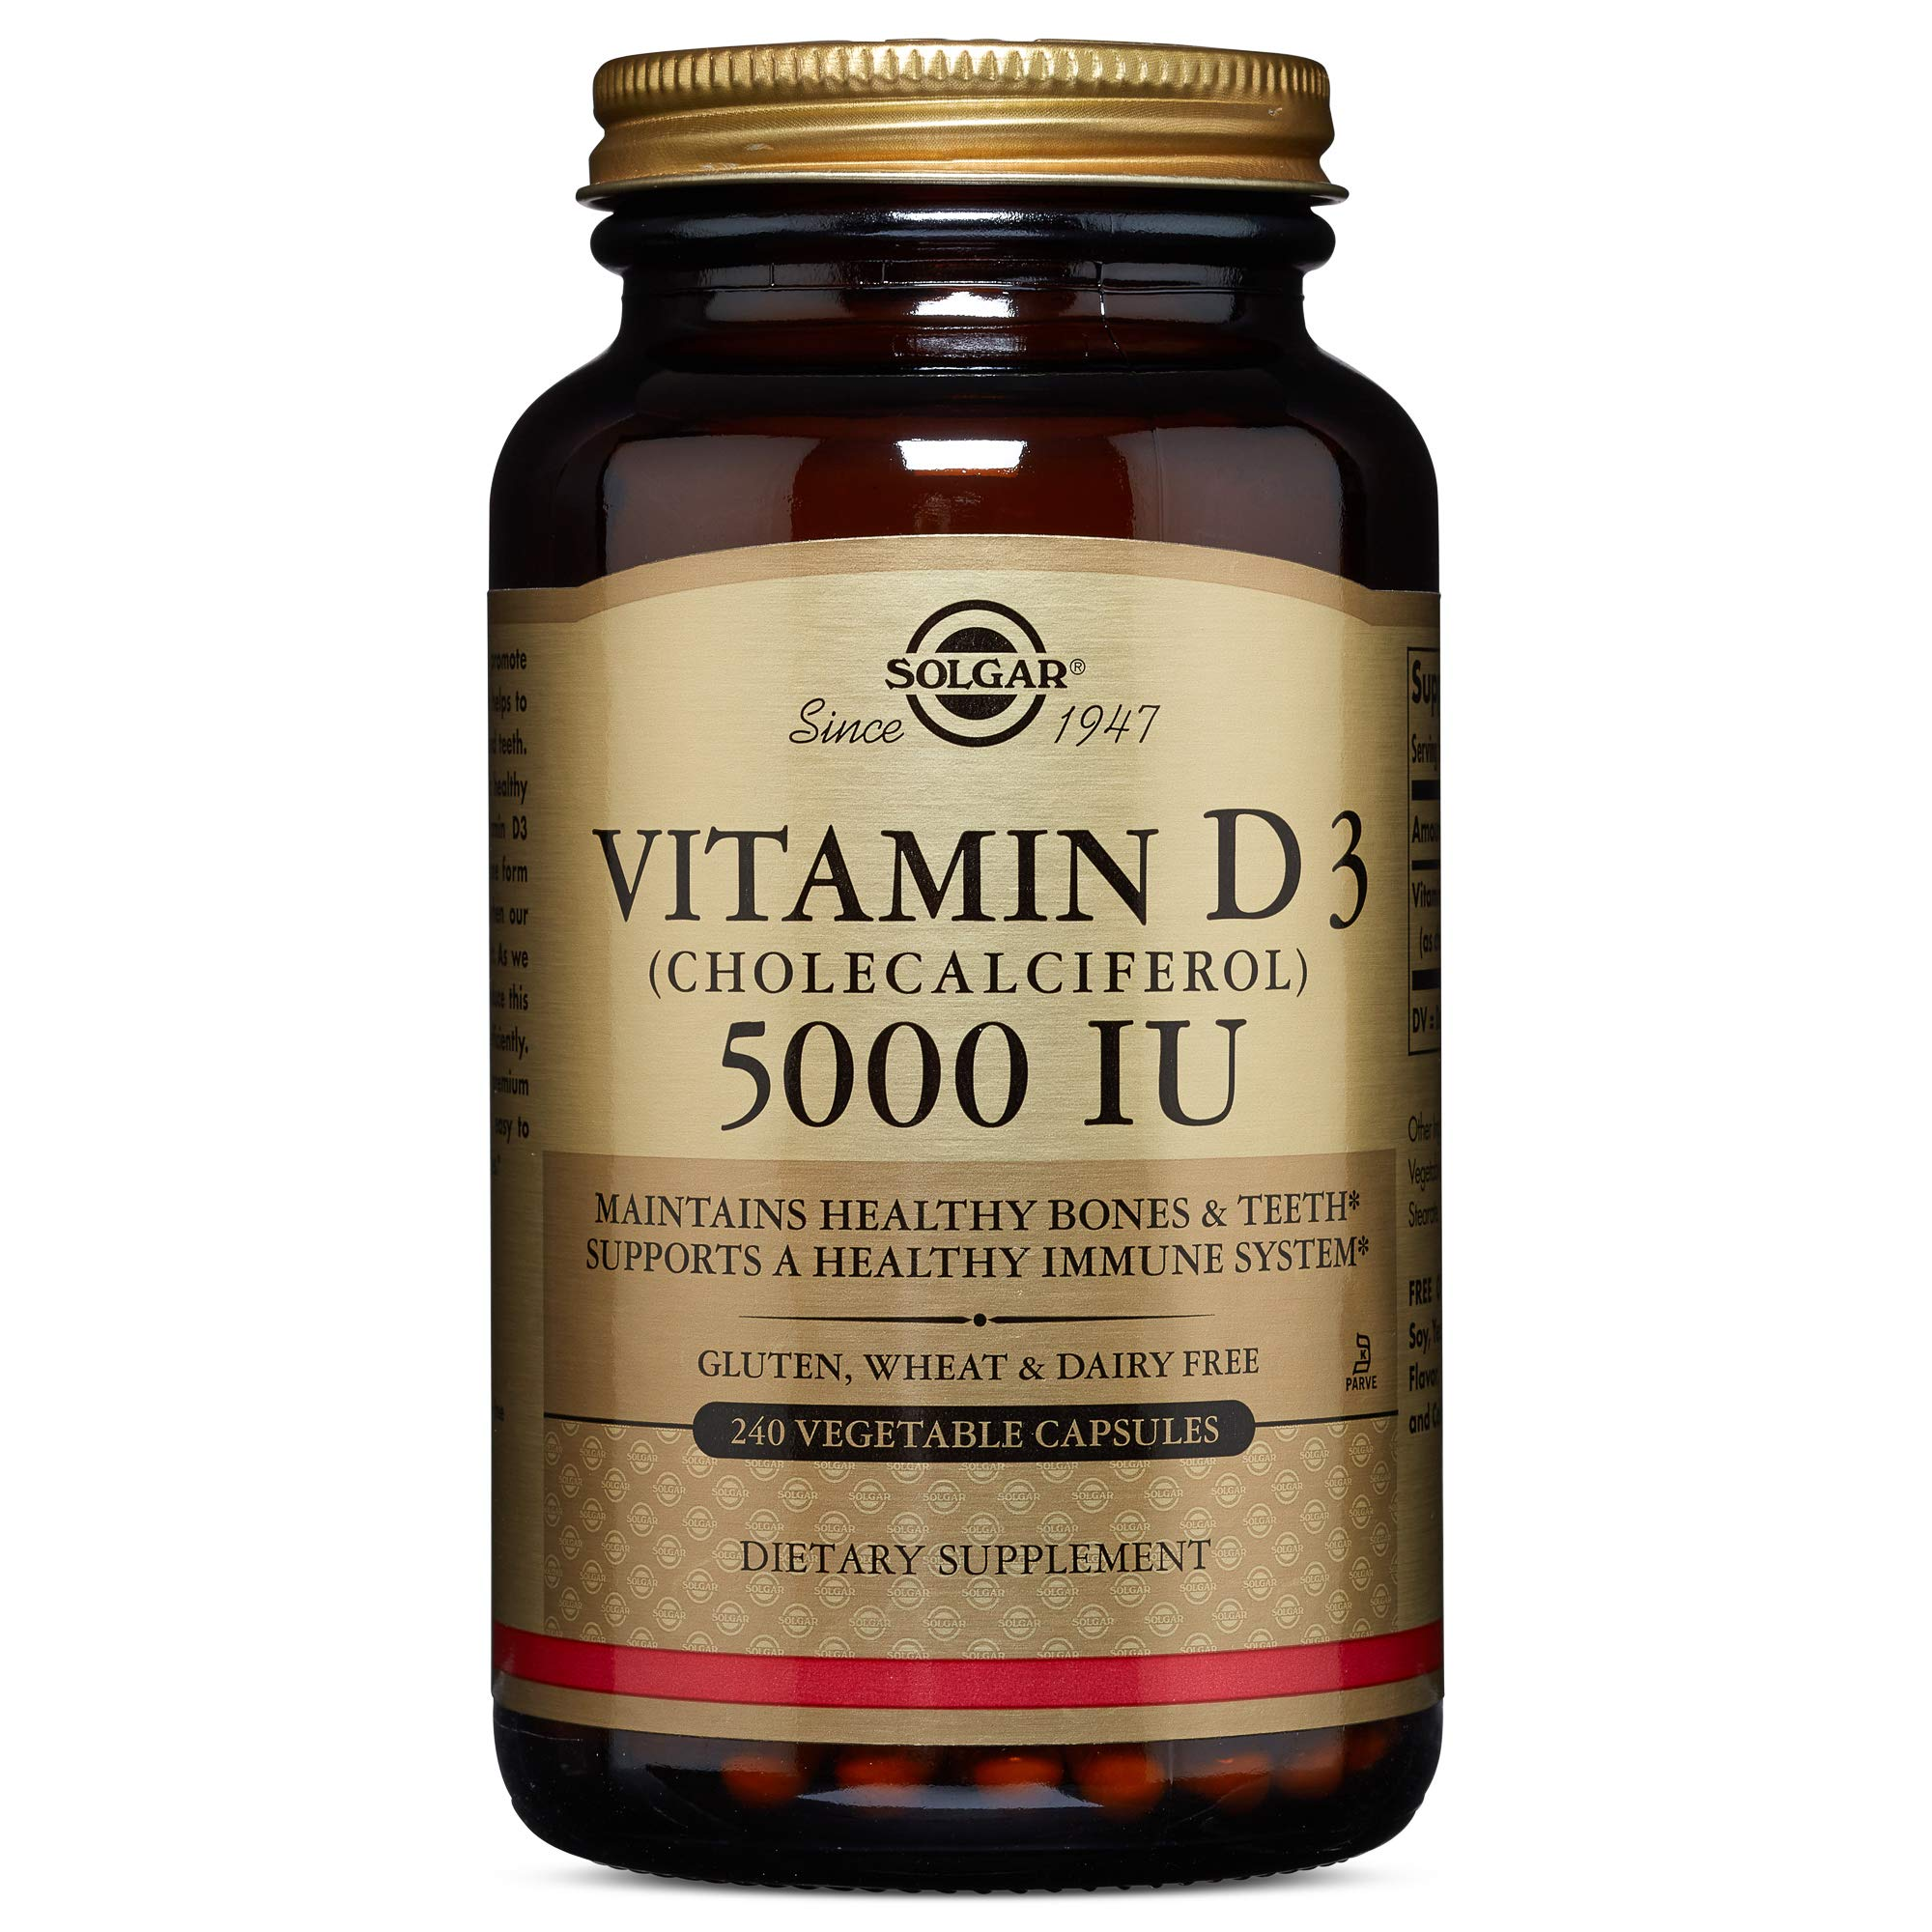 Solgar - Vitamin D3 (Cholecalciferol) 5,000 IU 240 Vegetable Capsules